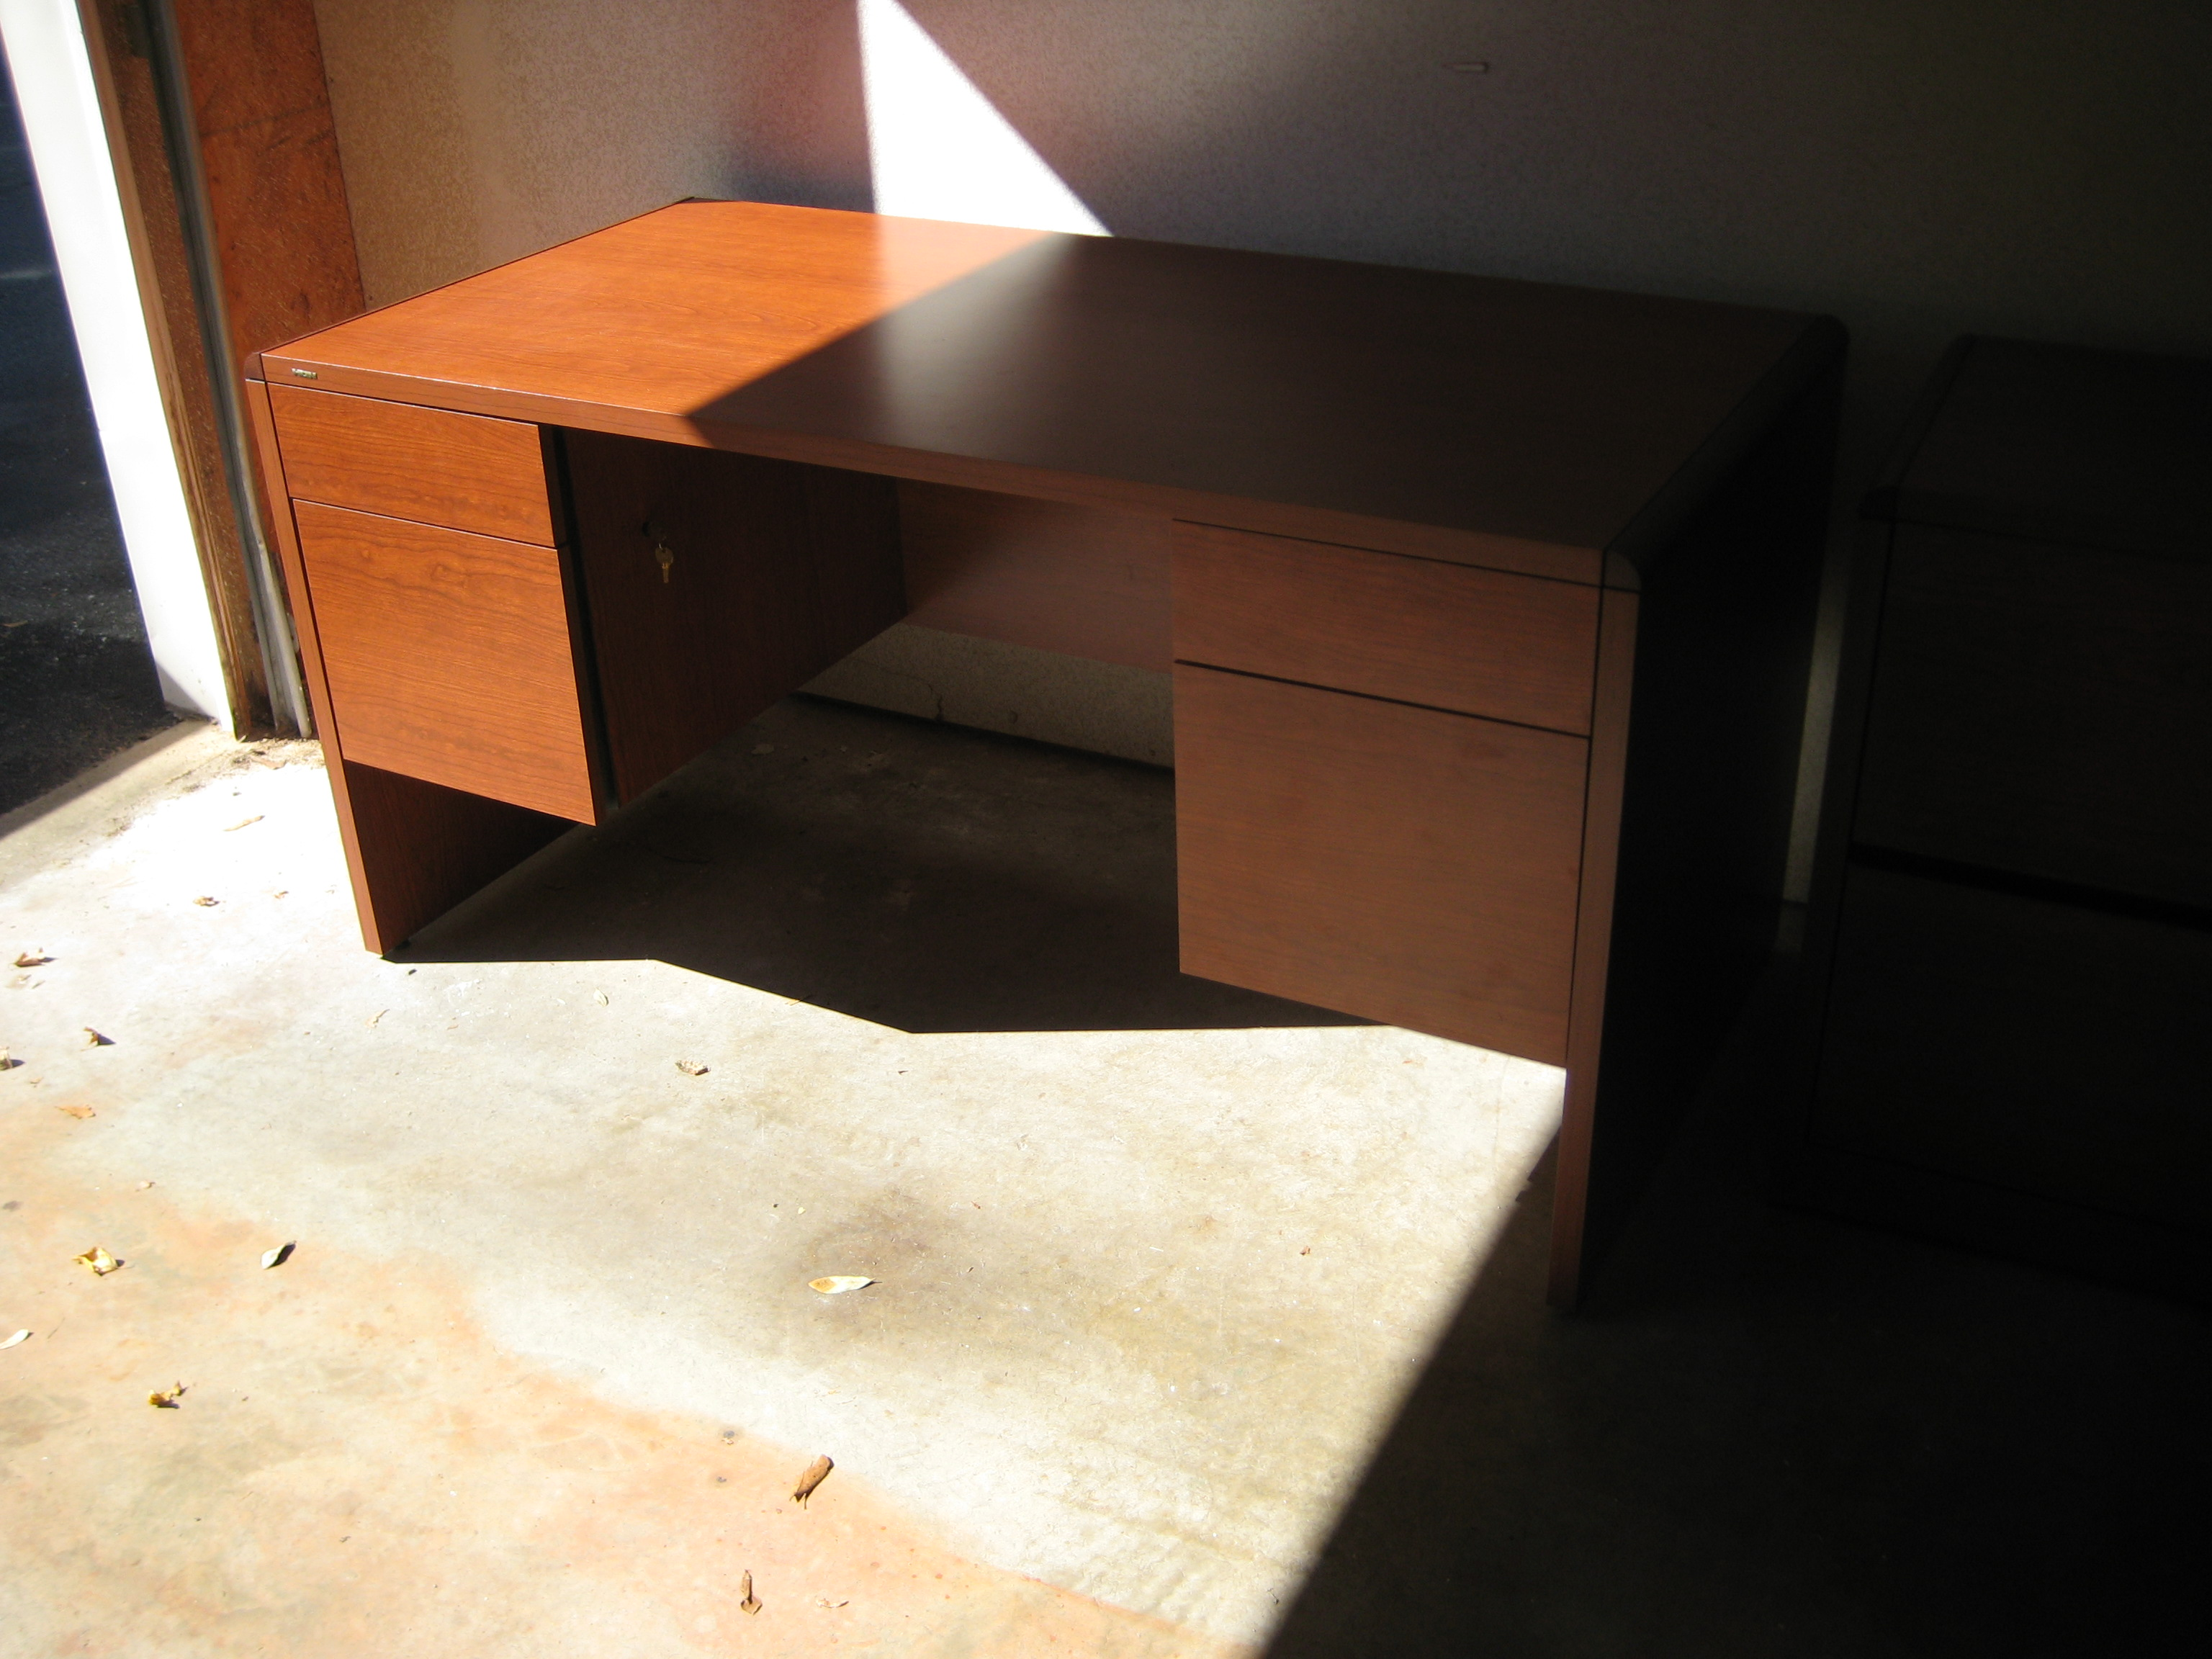 Bookshelf Filing Cabinet Matching Desk Filing Cabinet And Bookshelf For Sale Pensacola